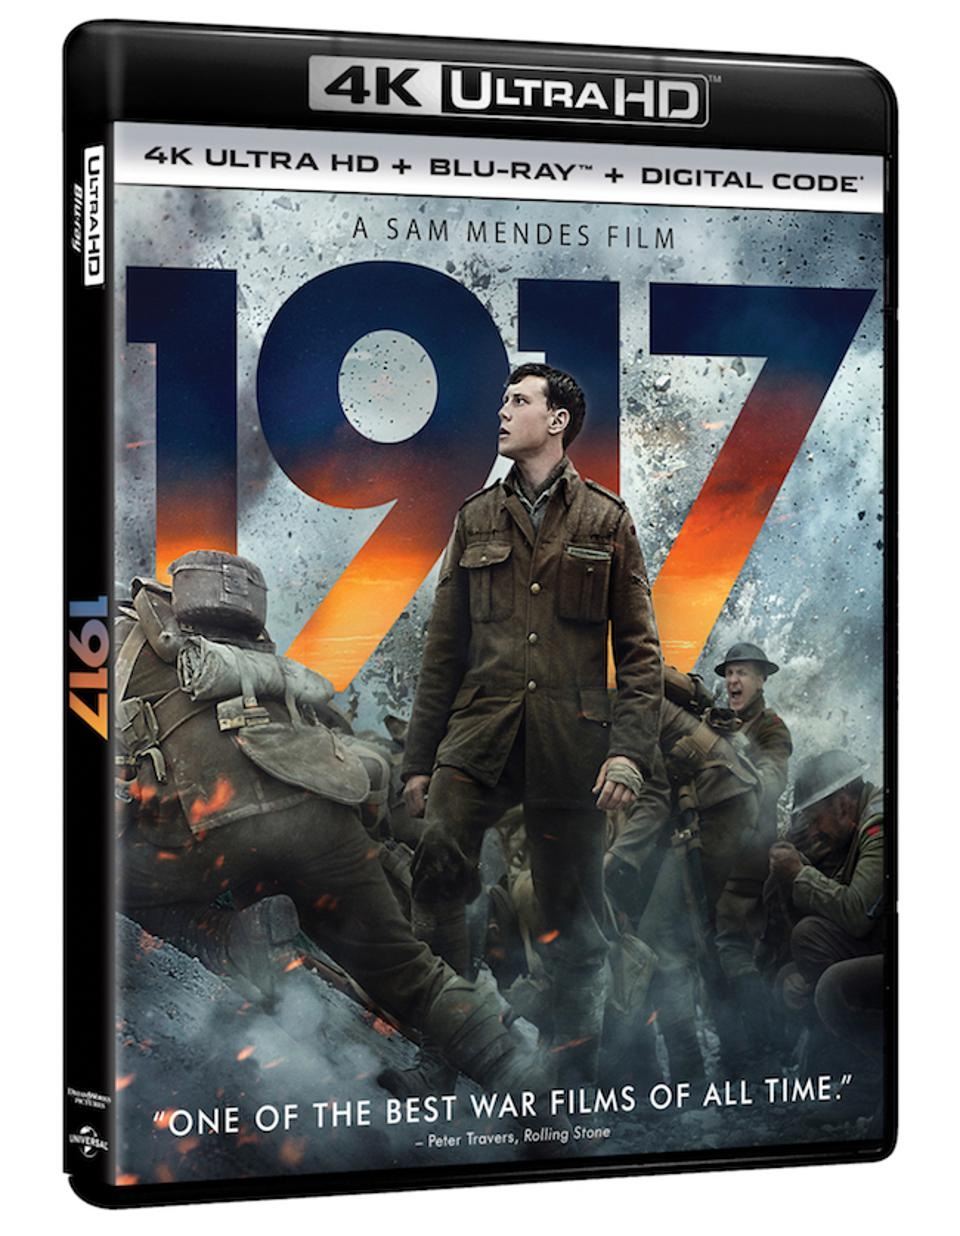 '1917' 4K Blu-Ray Details Announced - Complete With Universal HDR Support